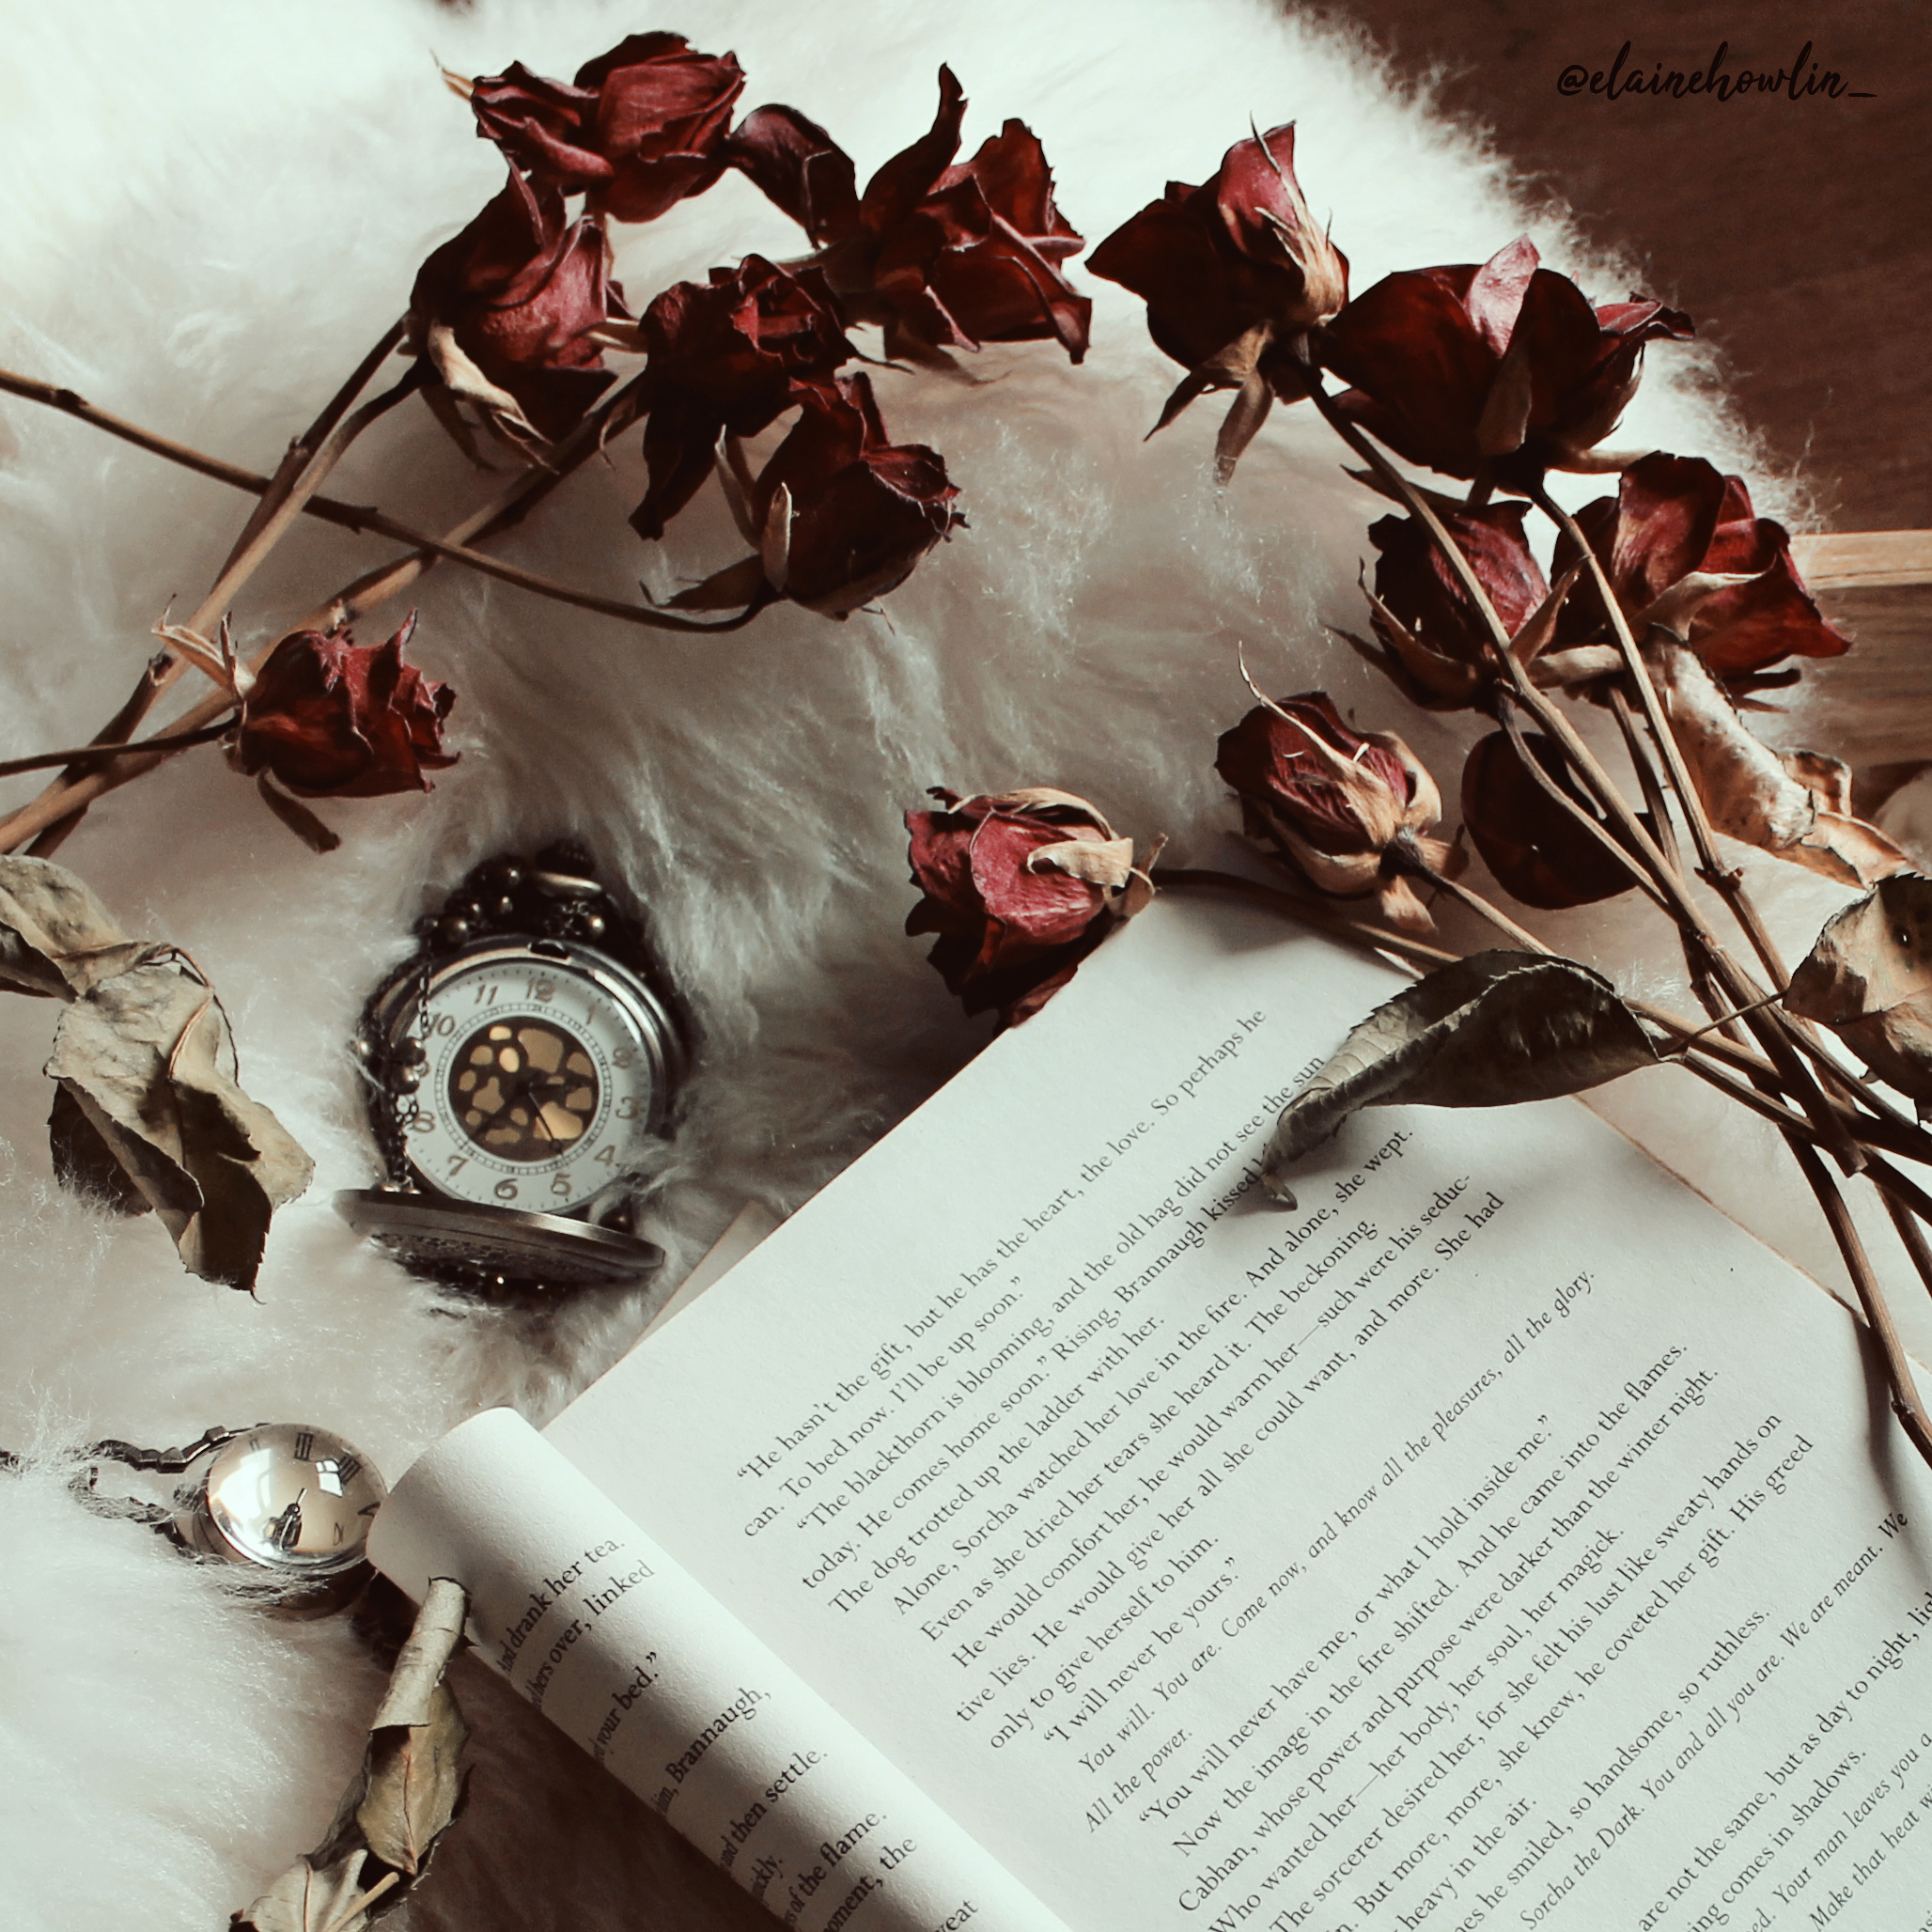 Book, roses and a pocketwatch